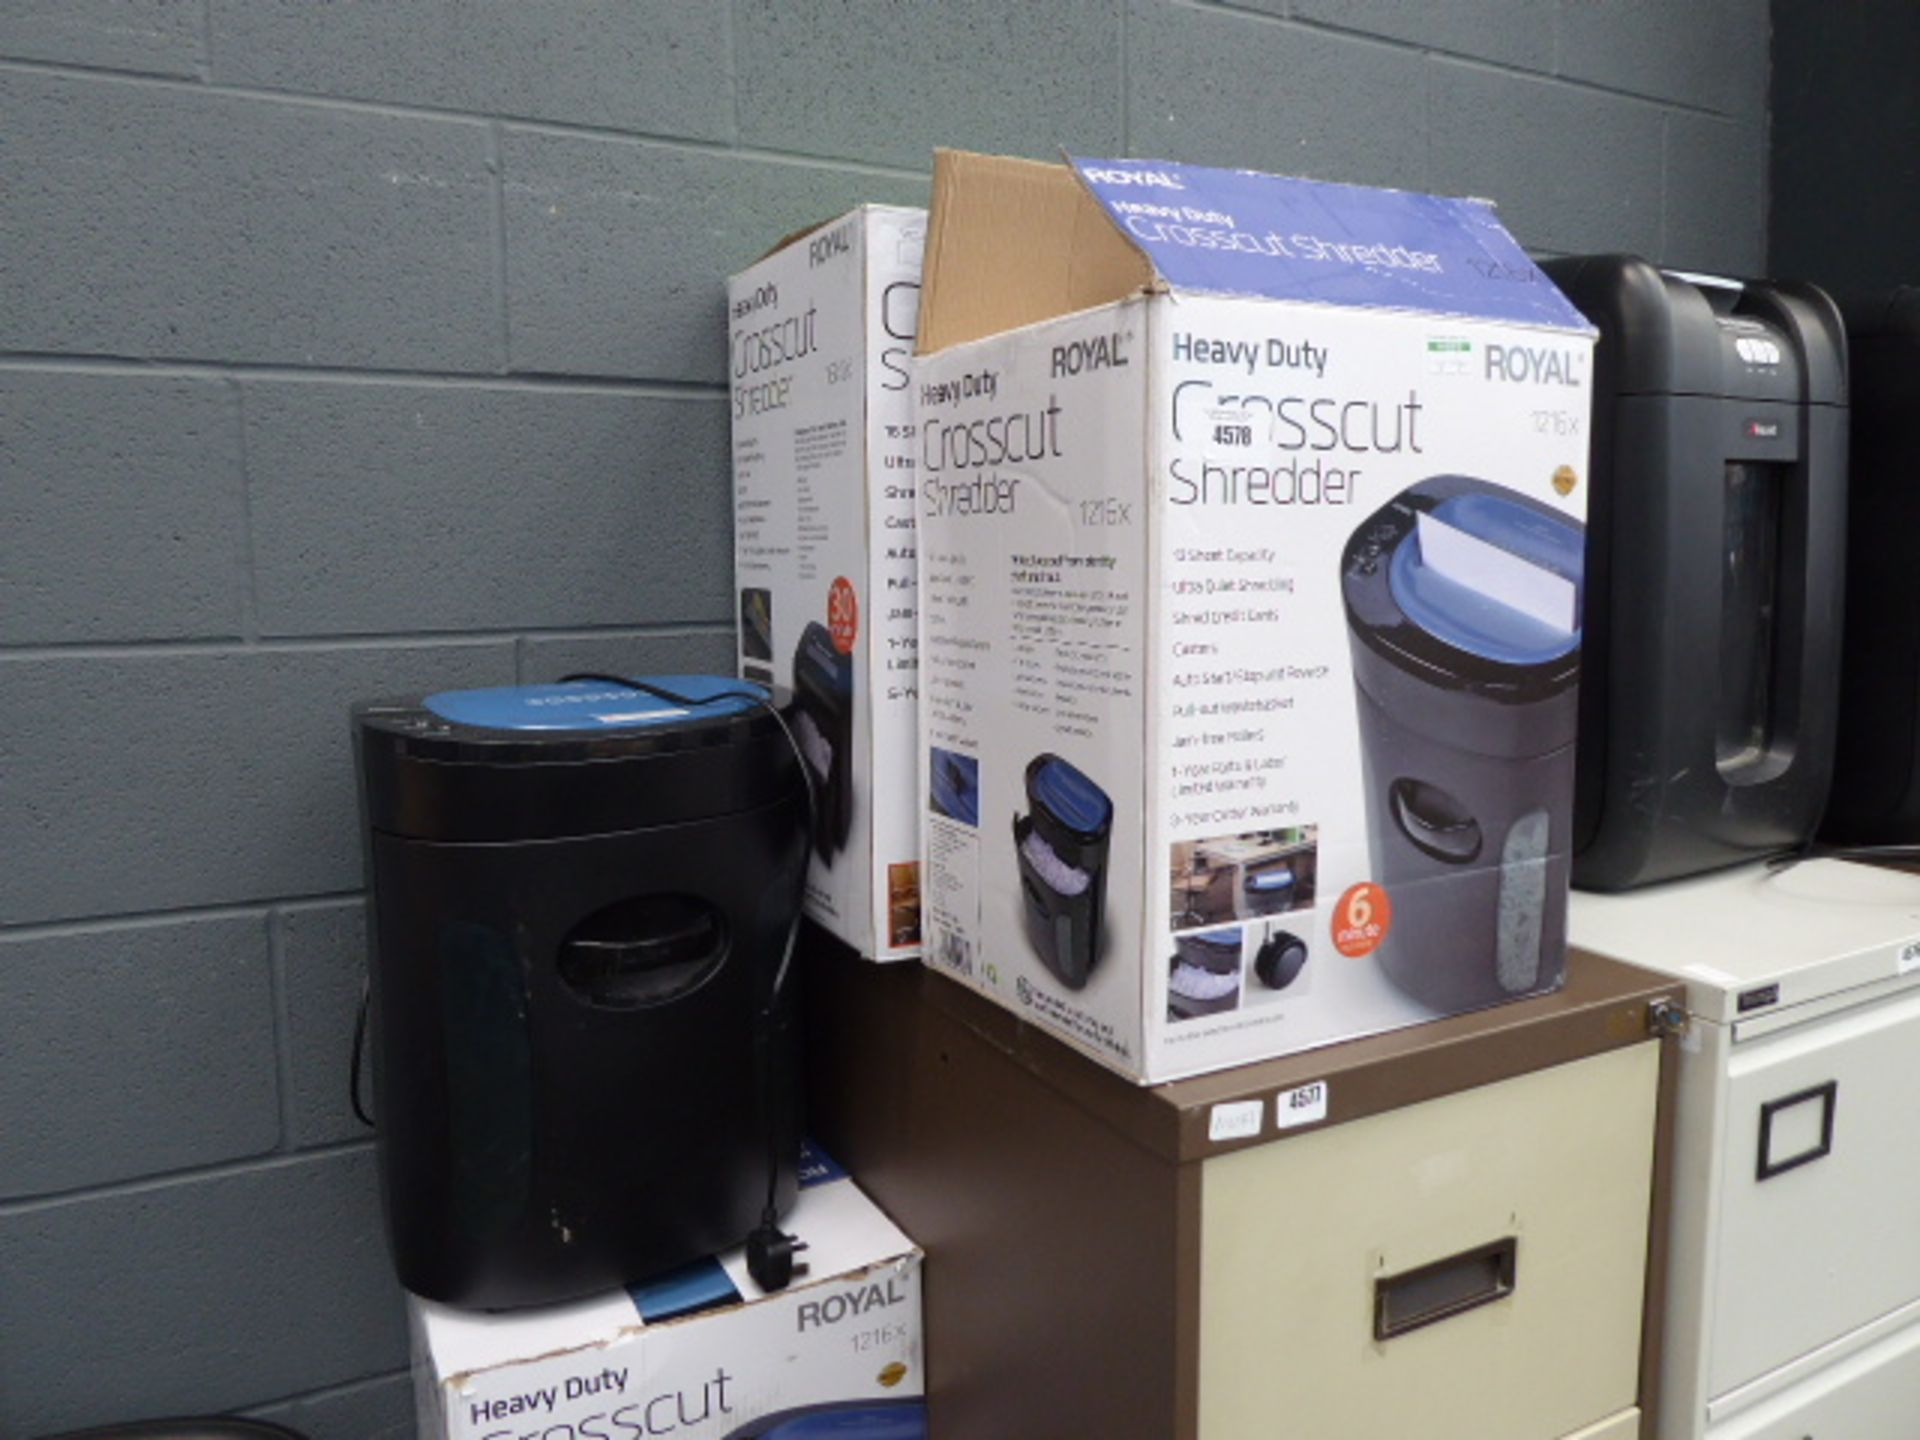 Lot 4578 - 3 boxed and another unboxed Royal paper shredders